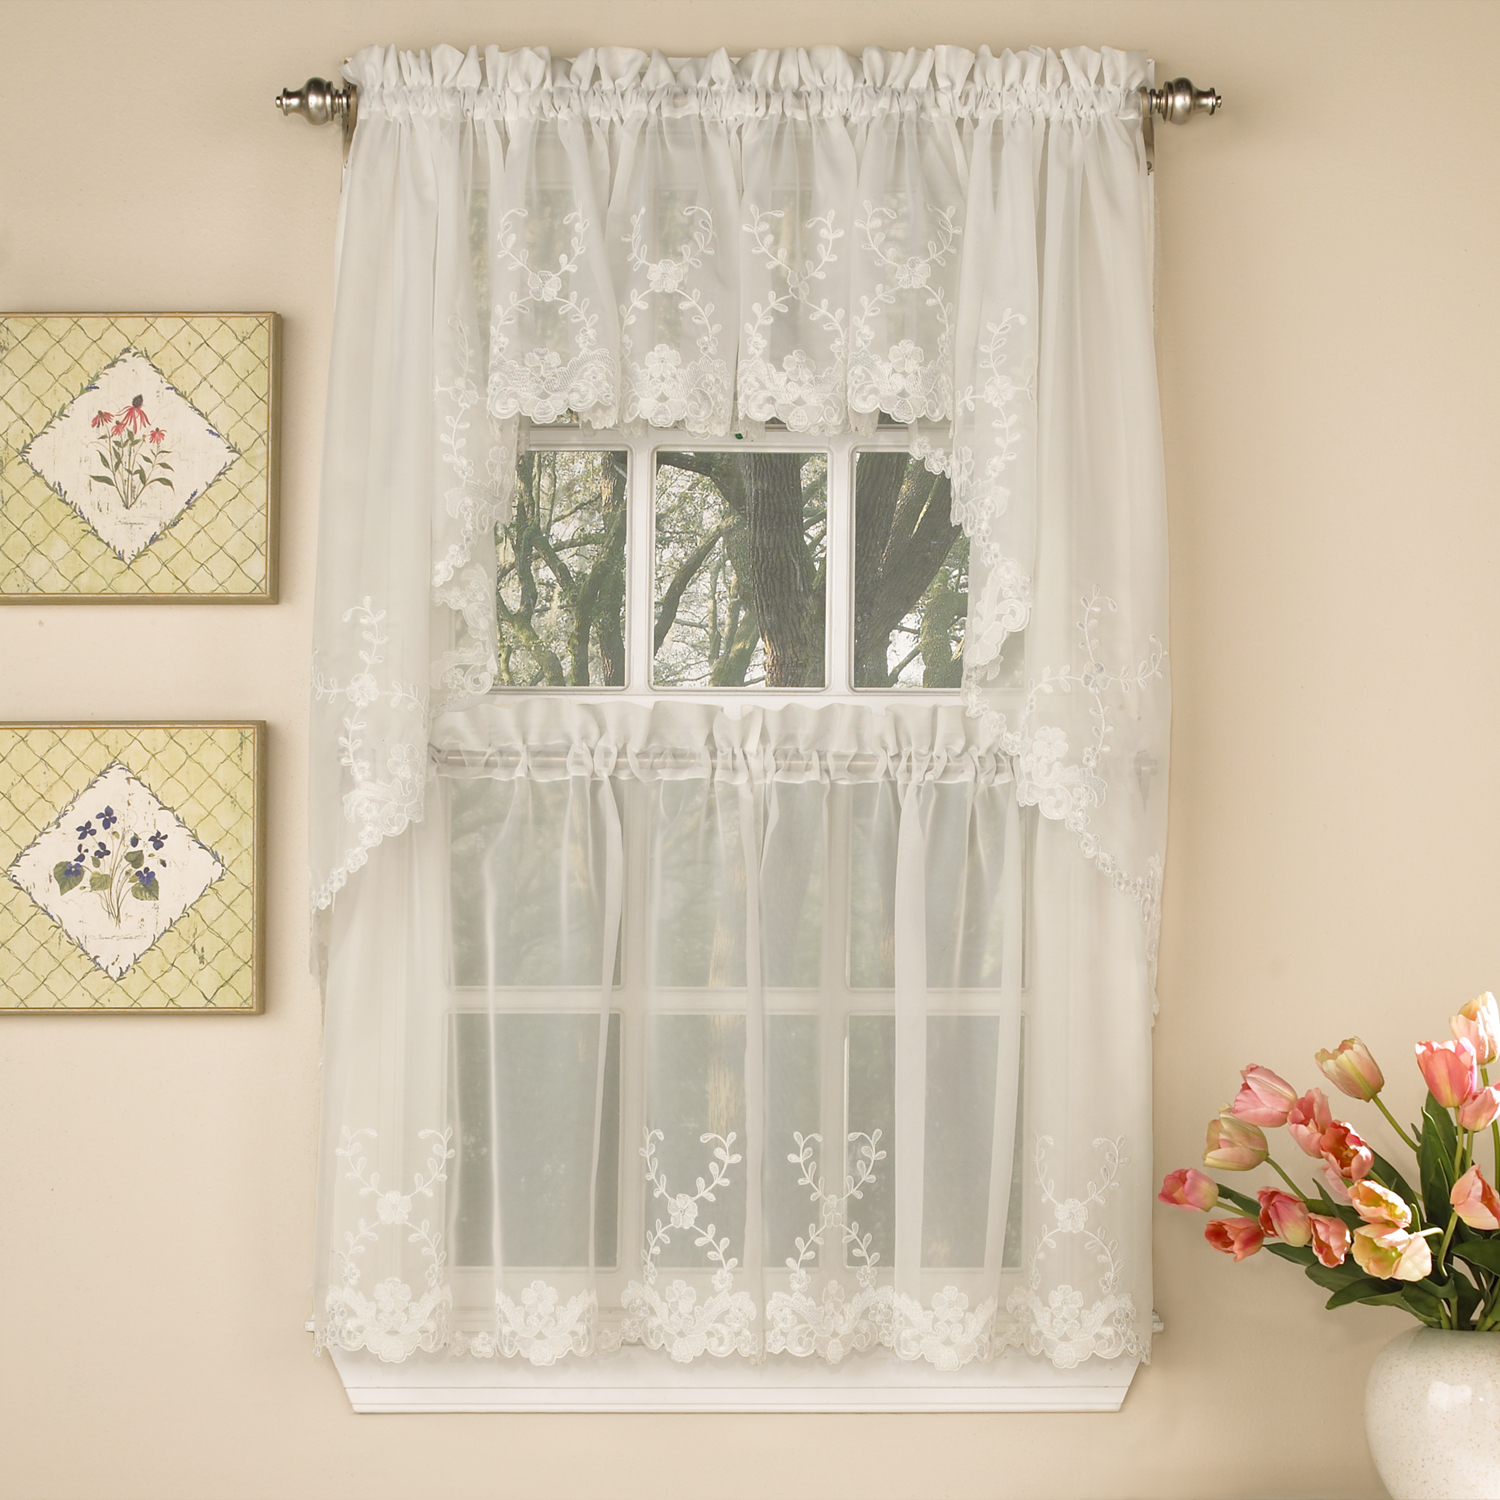 Details About Laurel Leaf Sheer Voile Embroidered Ivory Kitchen Curtains Tier, Valance Or Swag Pertaining To Embroidered Rod Pocket Kitchen Tiers (View 8 of 20)